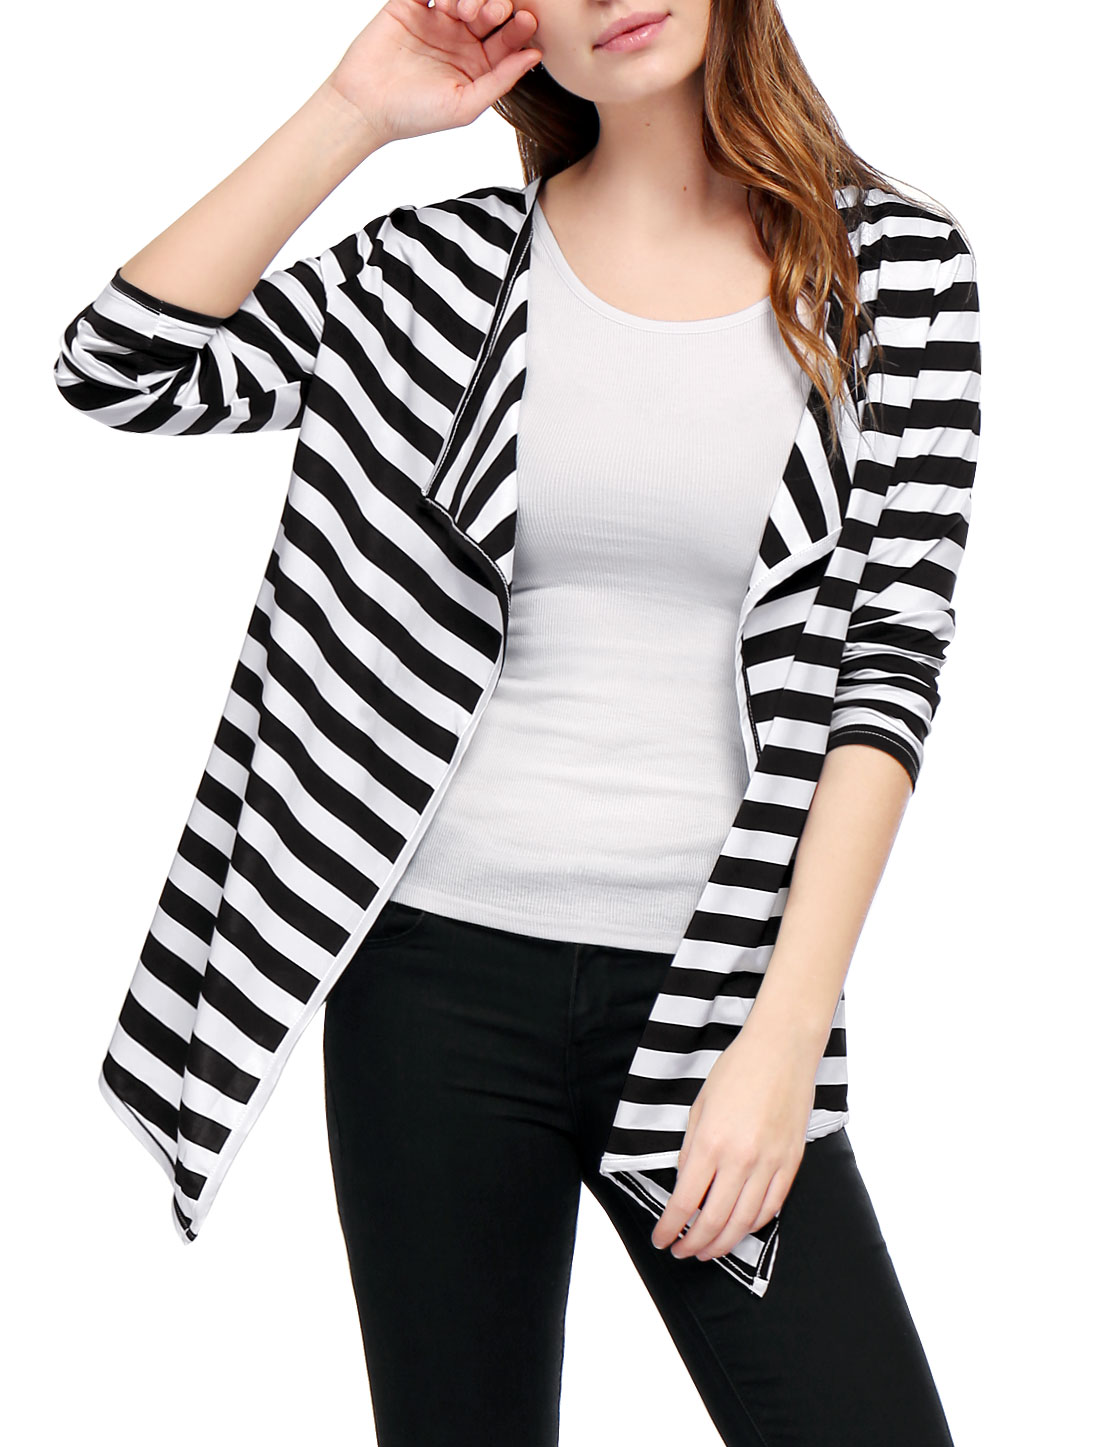 Ladies Bracelet Sleeve Stripes Pattern Black White Two-Tone Cardigan XS